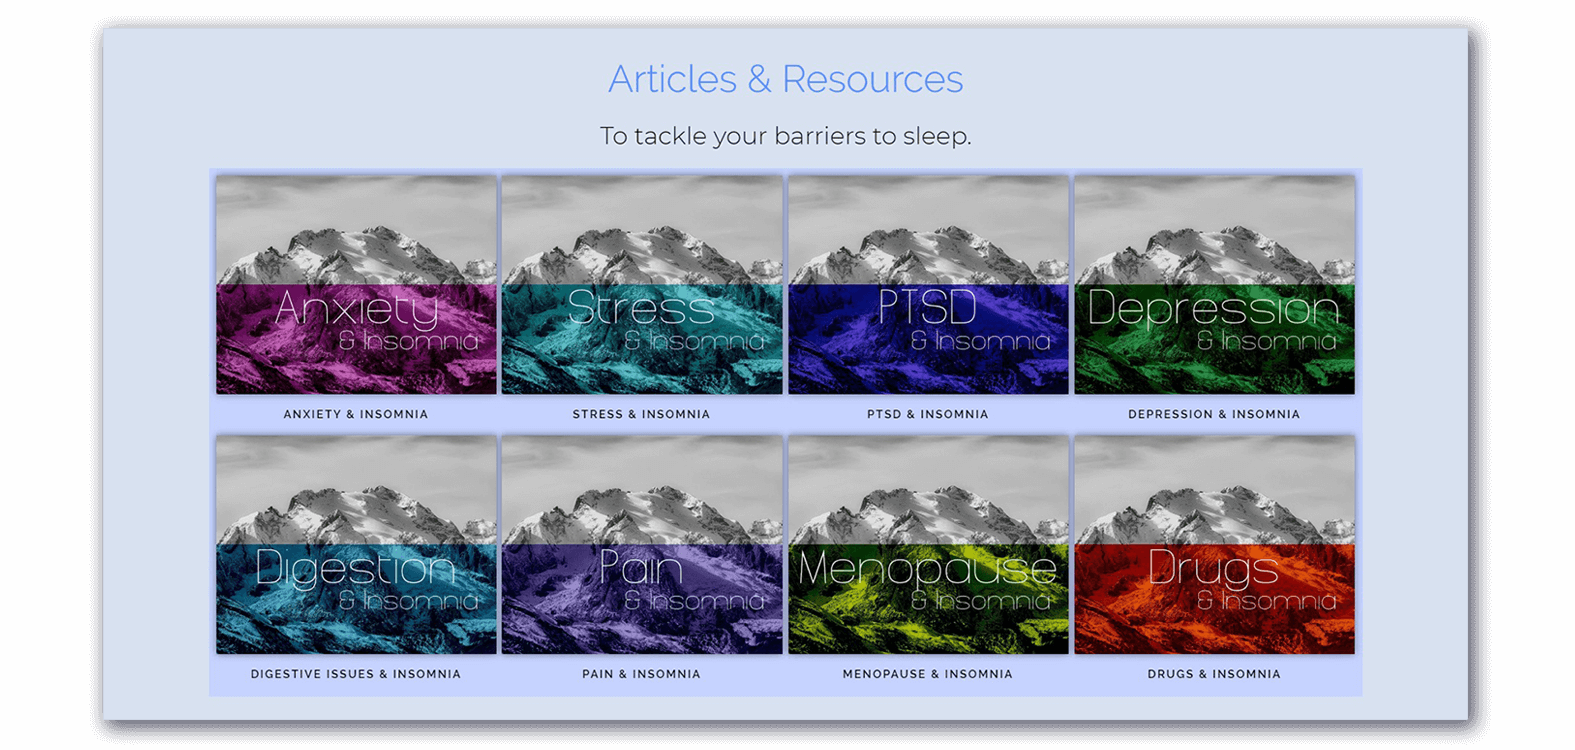 Learn how to identify and treat your barriers to sleep